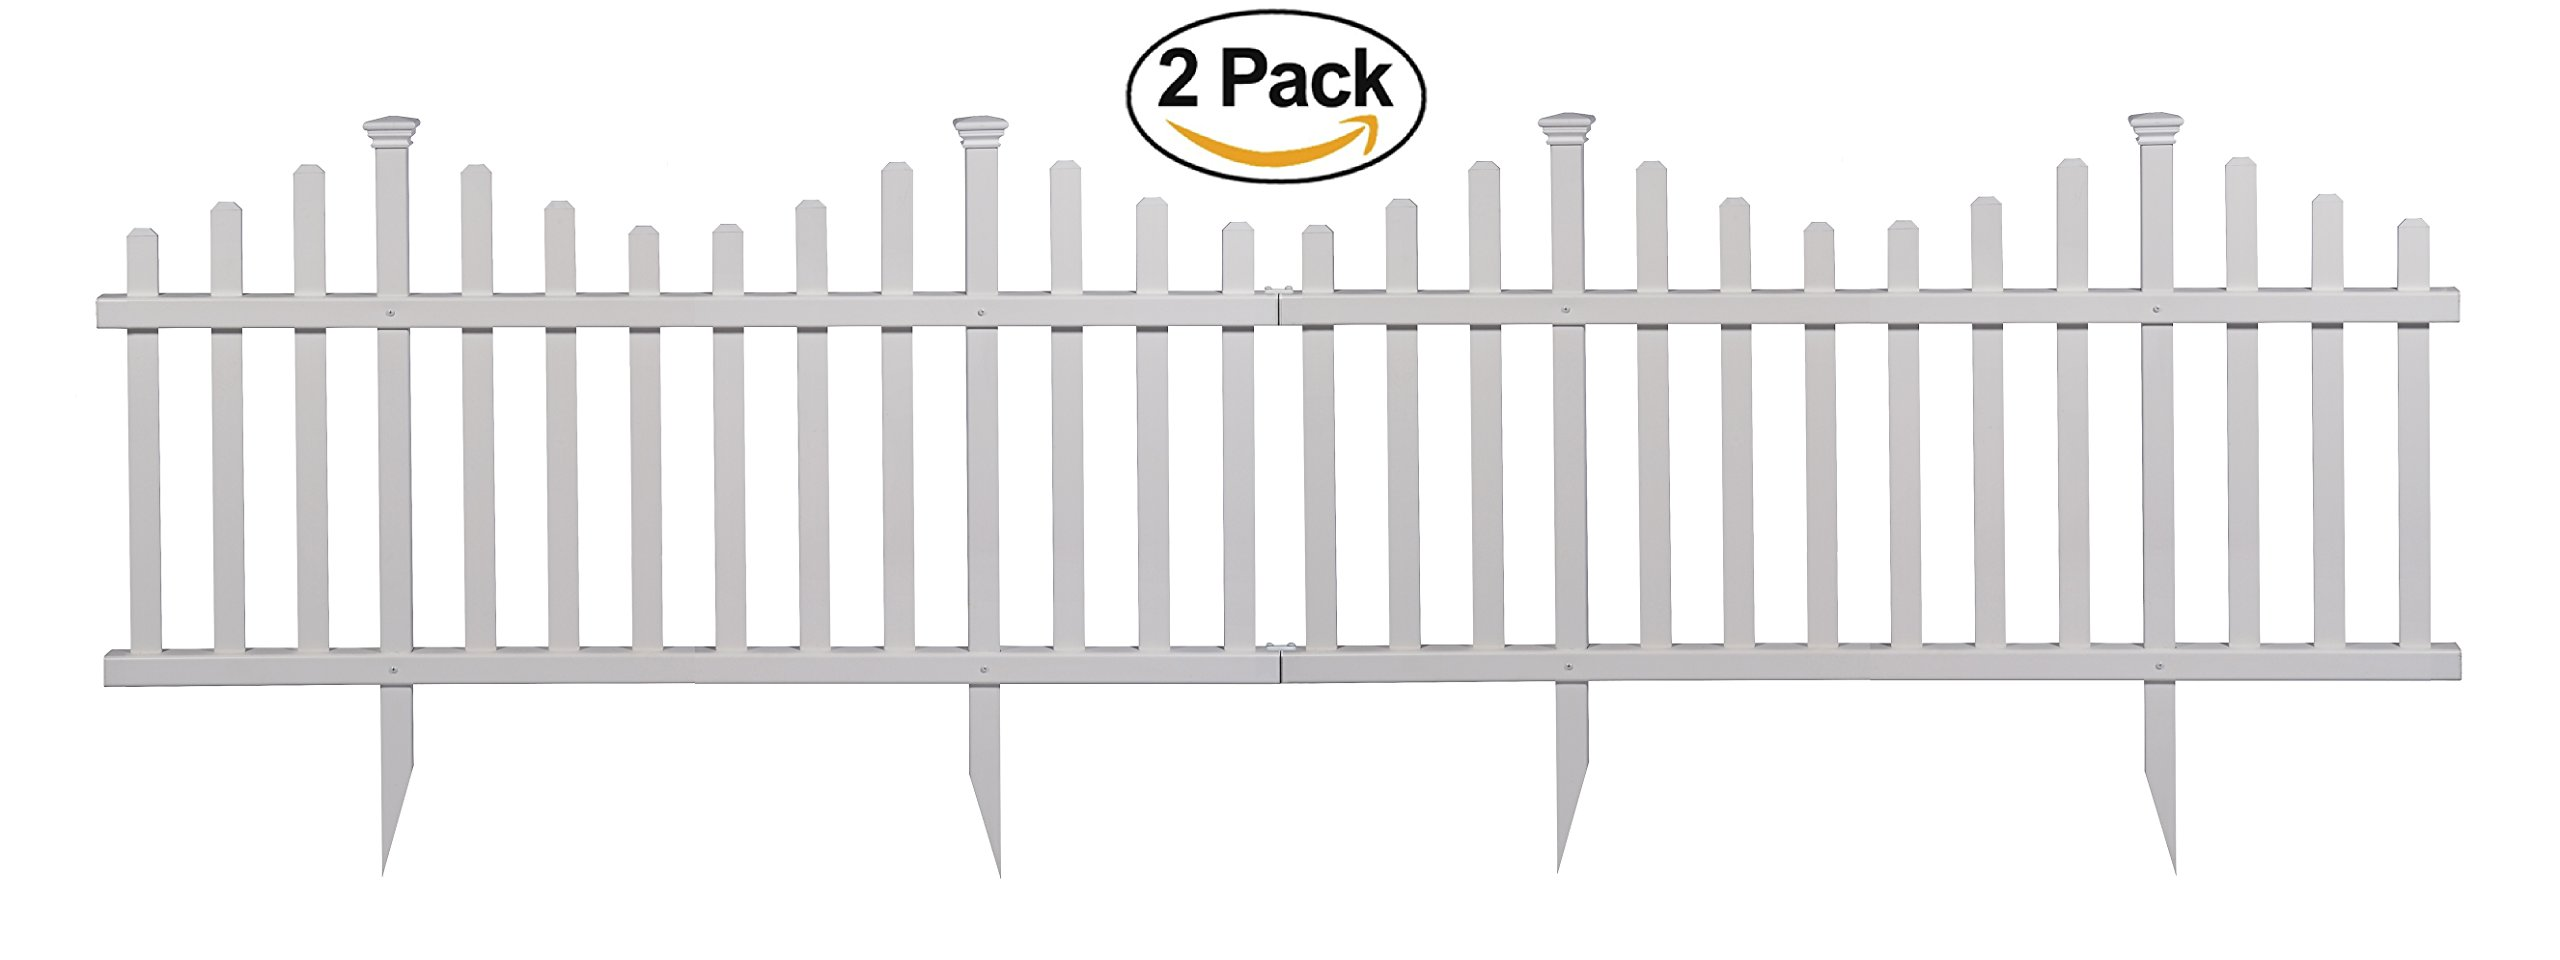 Best Rated In Decorative Fences Helpful Customer Reviews Fence Gate For Transitional Putting Up Electric Zippity Outdoor Products Zp19001 Madison Vinyl Picket White 30 X 56